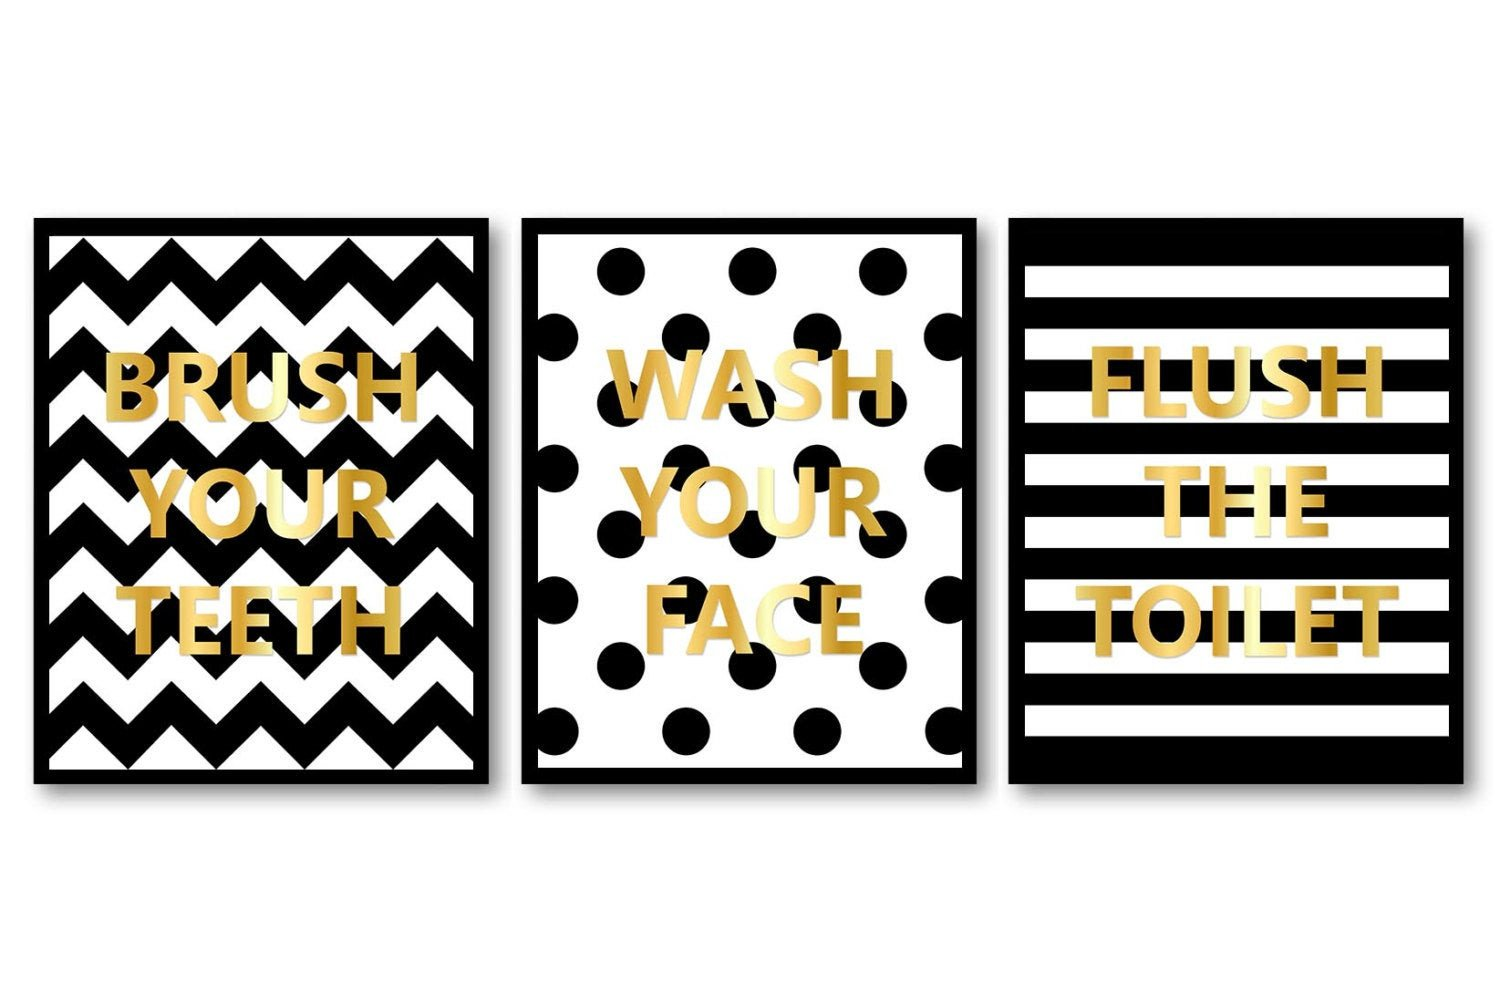 White and Gold Bathroom Decor Inspirational Black White Gold Bathroom Decor Bathroom Print Set Of 3 Brush